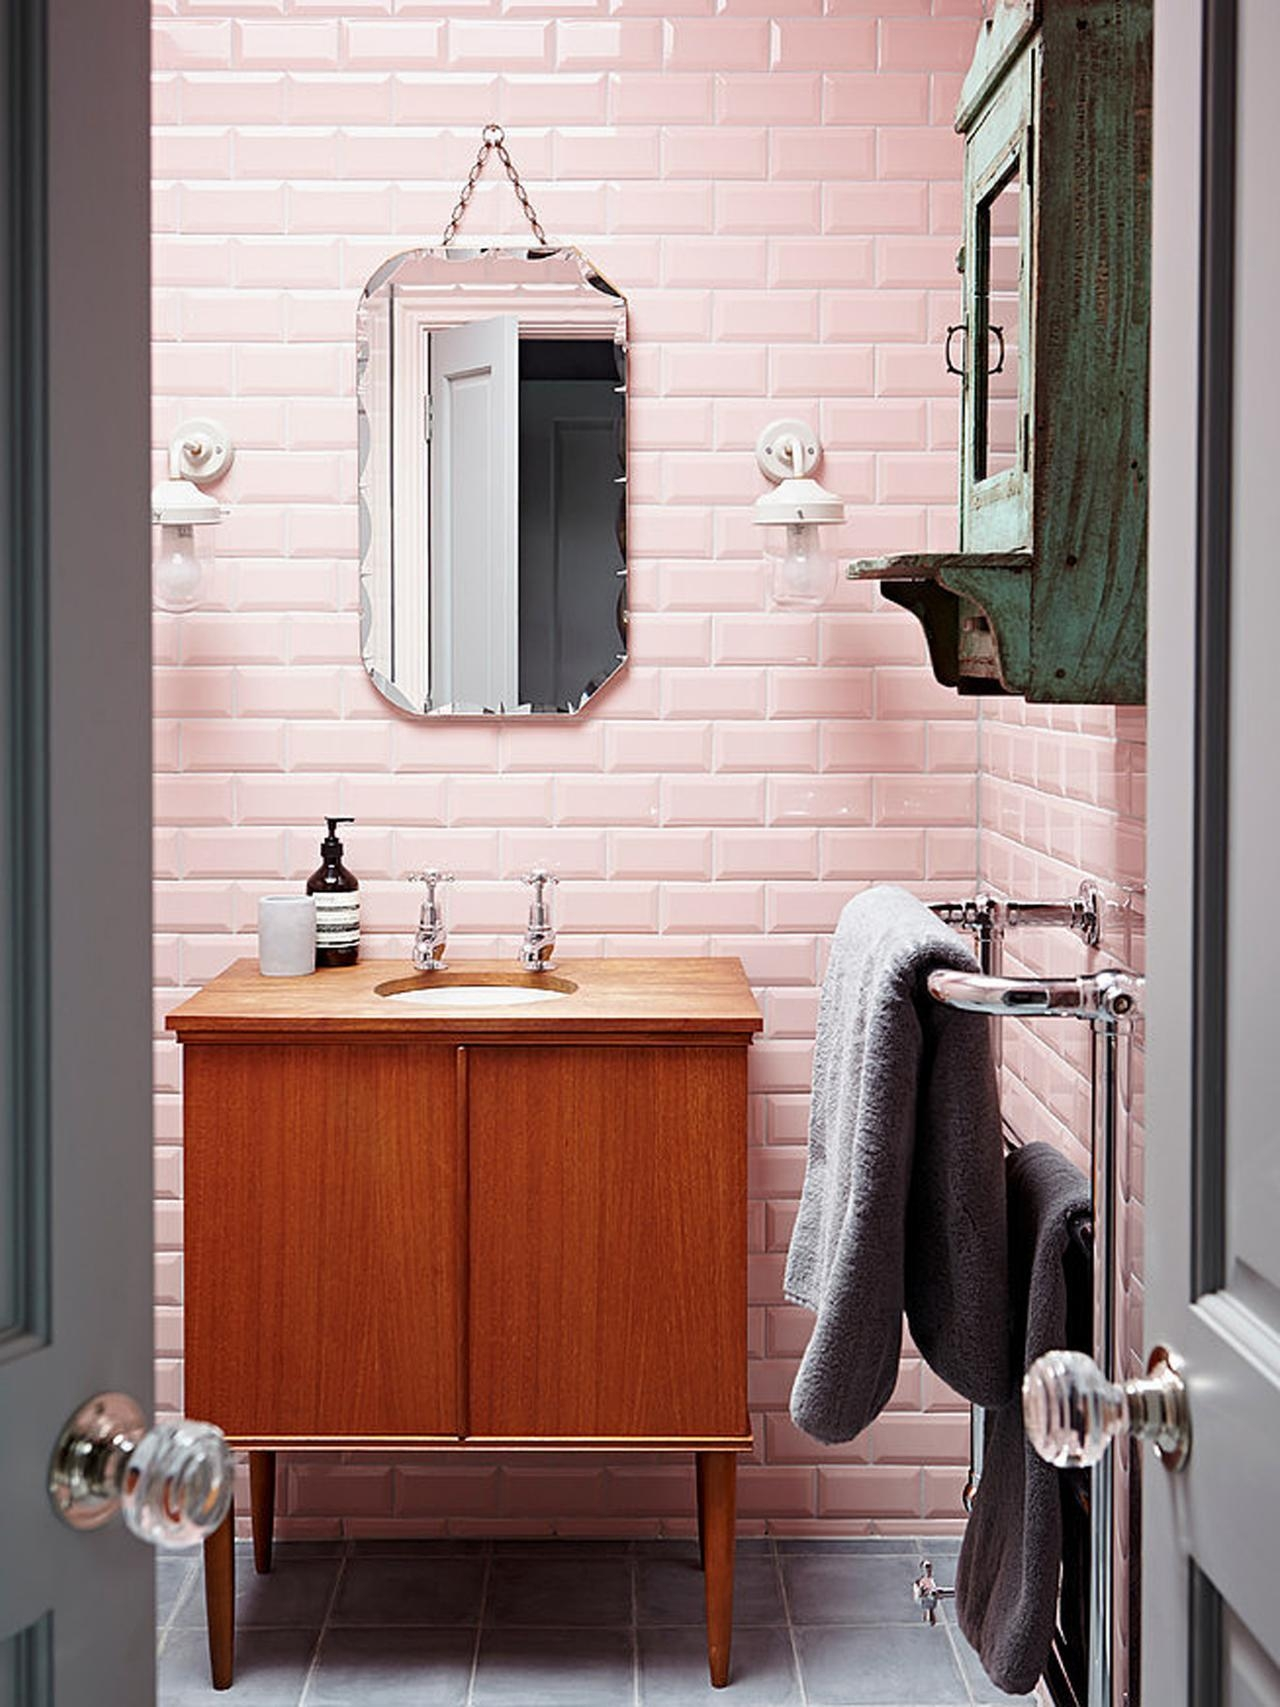 Reasons To Love Retro Pink Tiled Bathrooms | Hgtv's Decorating Intended For Retro Bathroom Mirror (Image 14 of 20)